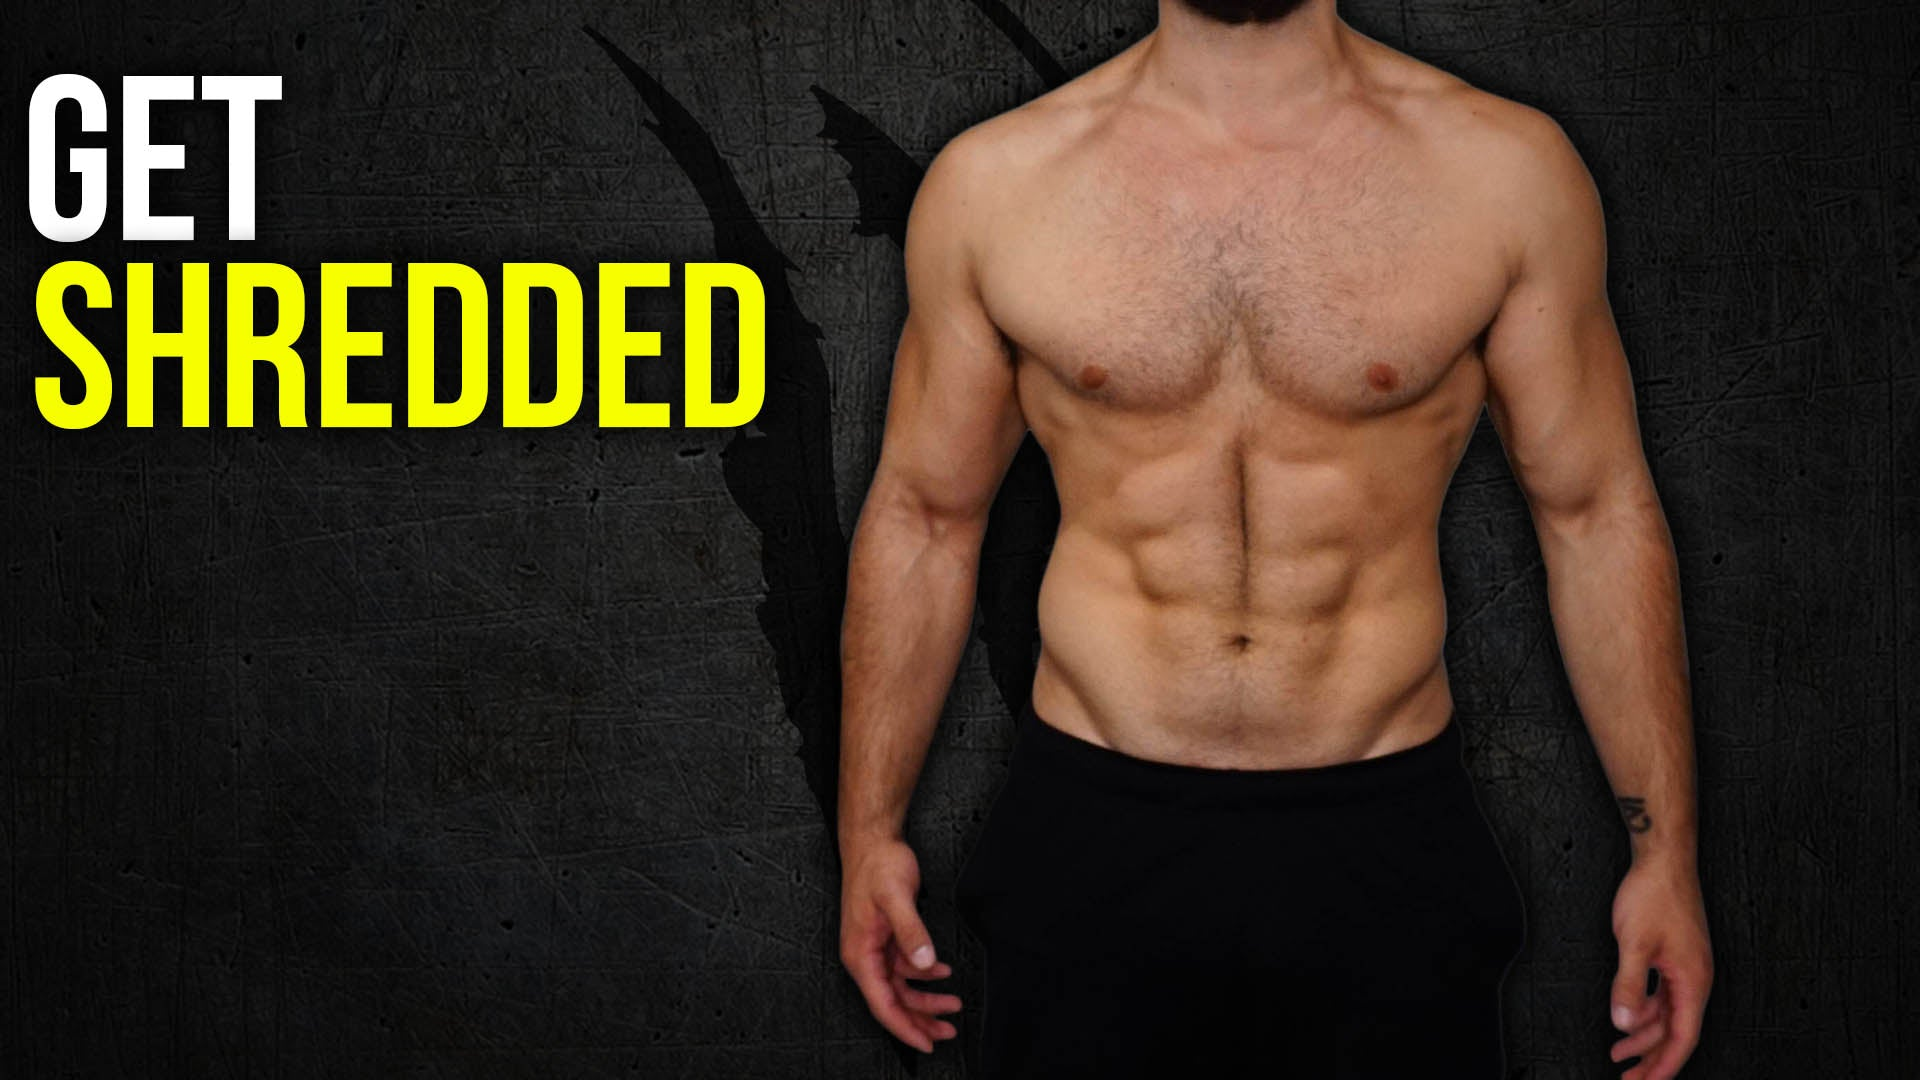 6 Minute Home Cardio Workout With No Equipment